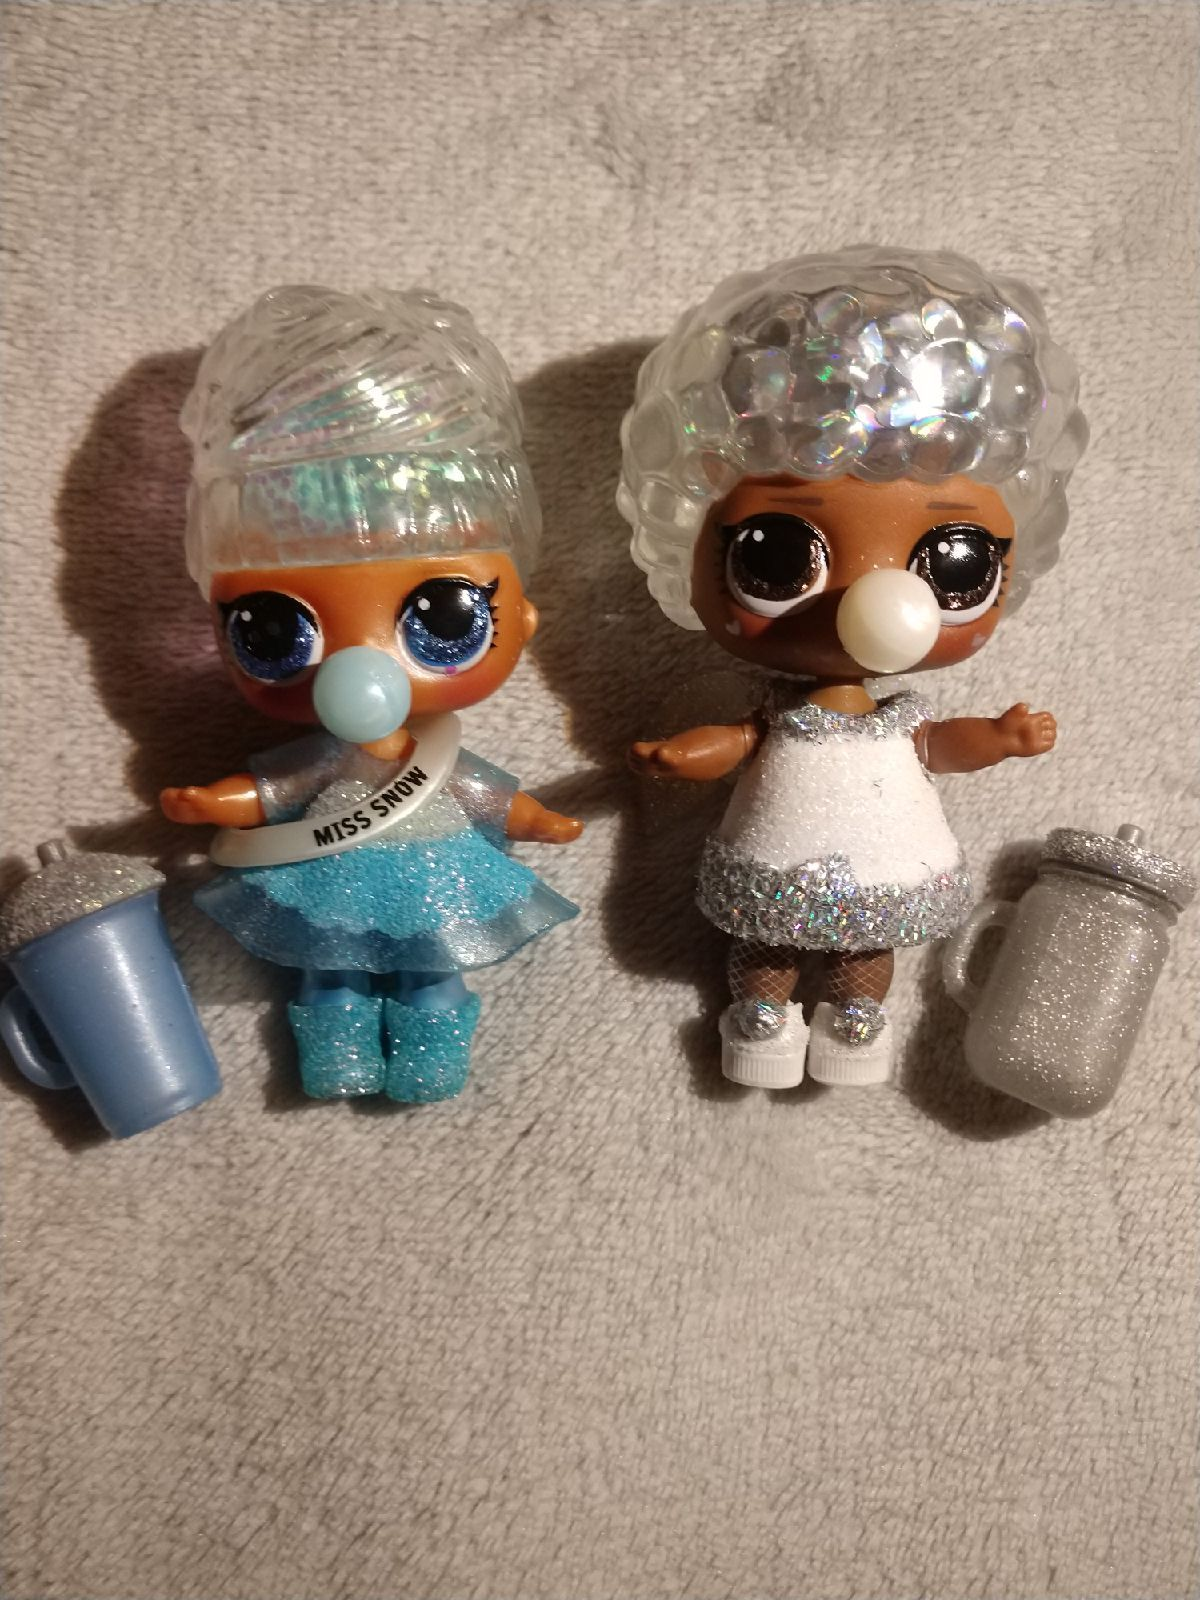 Brand New Lol Surprise Winter Disco Series Set Of 2 Bashful Q T And Miss Snow Ask About Bundling Lol Dolls Baby Girl Toys Christmas Dolls